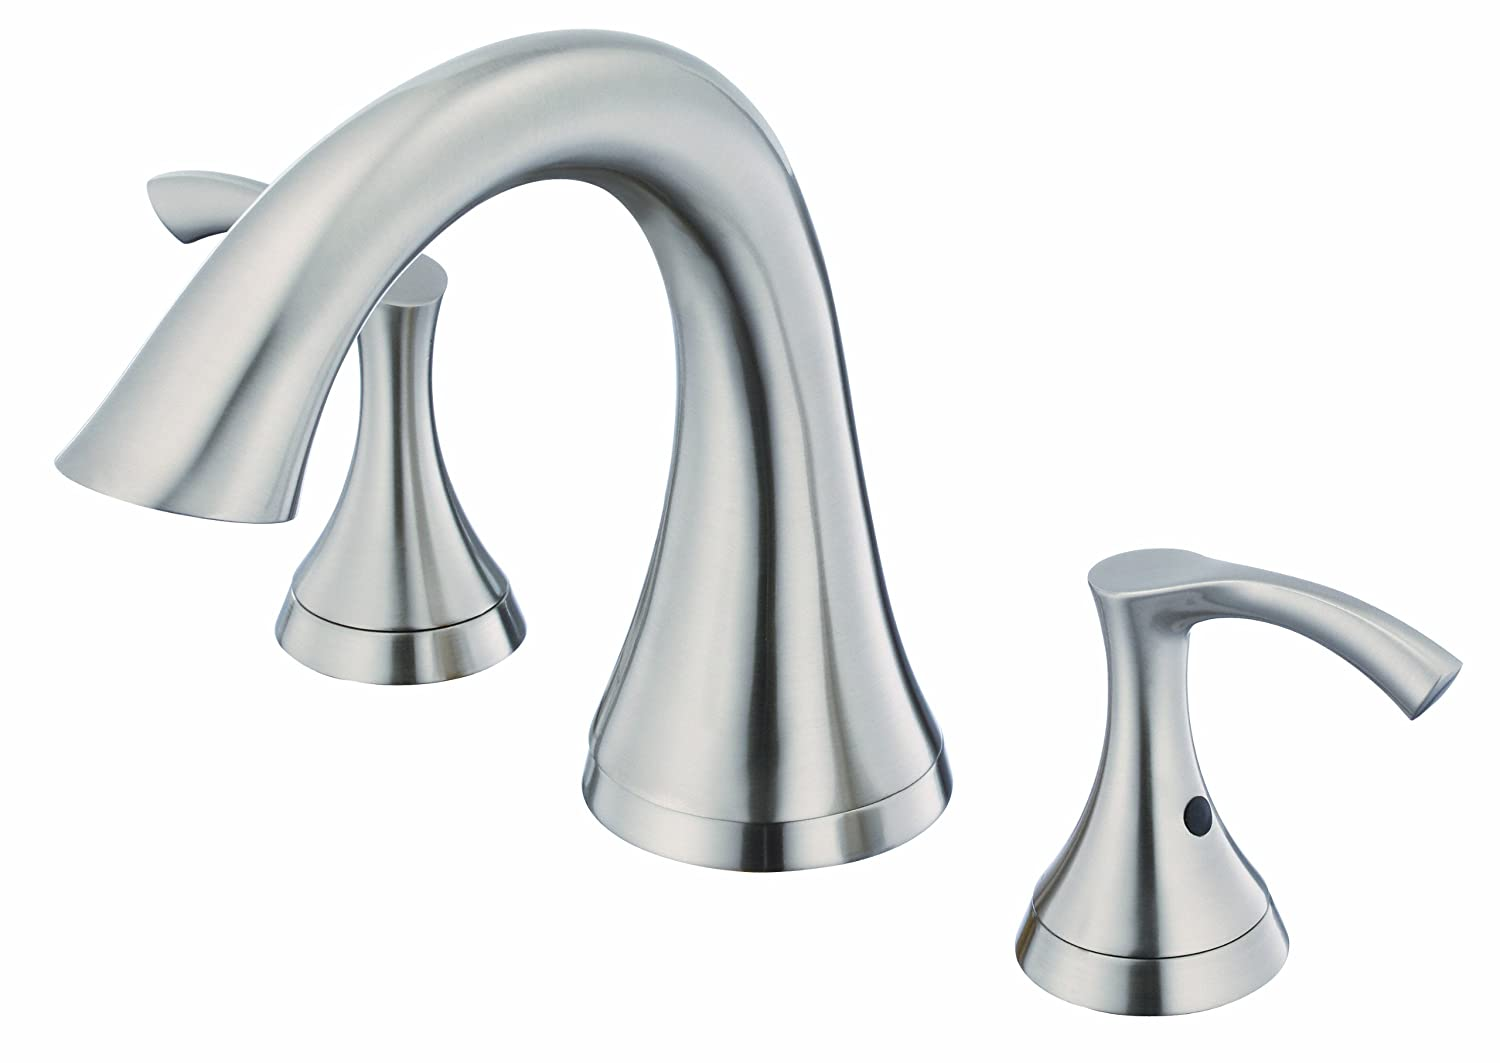 keefe products luxury bathtub tub banner collection faucet dxv faucets rem